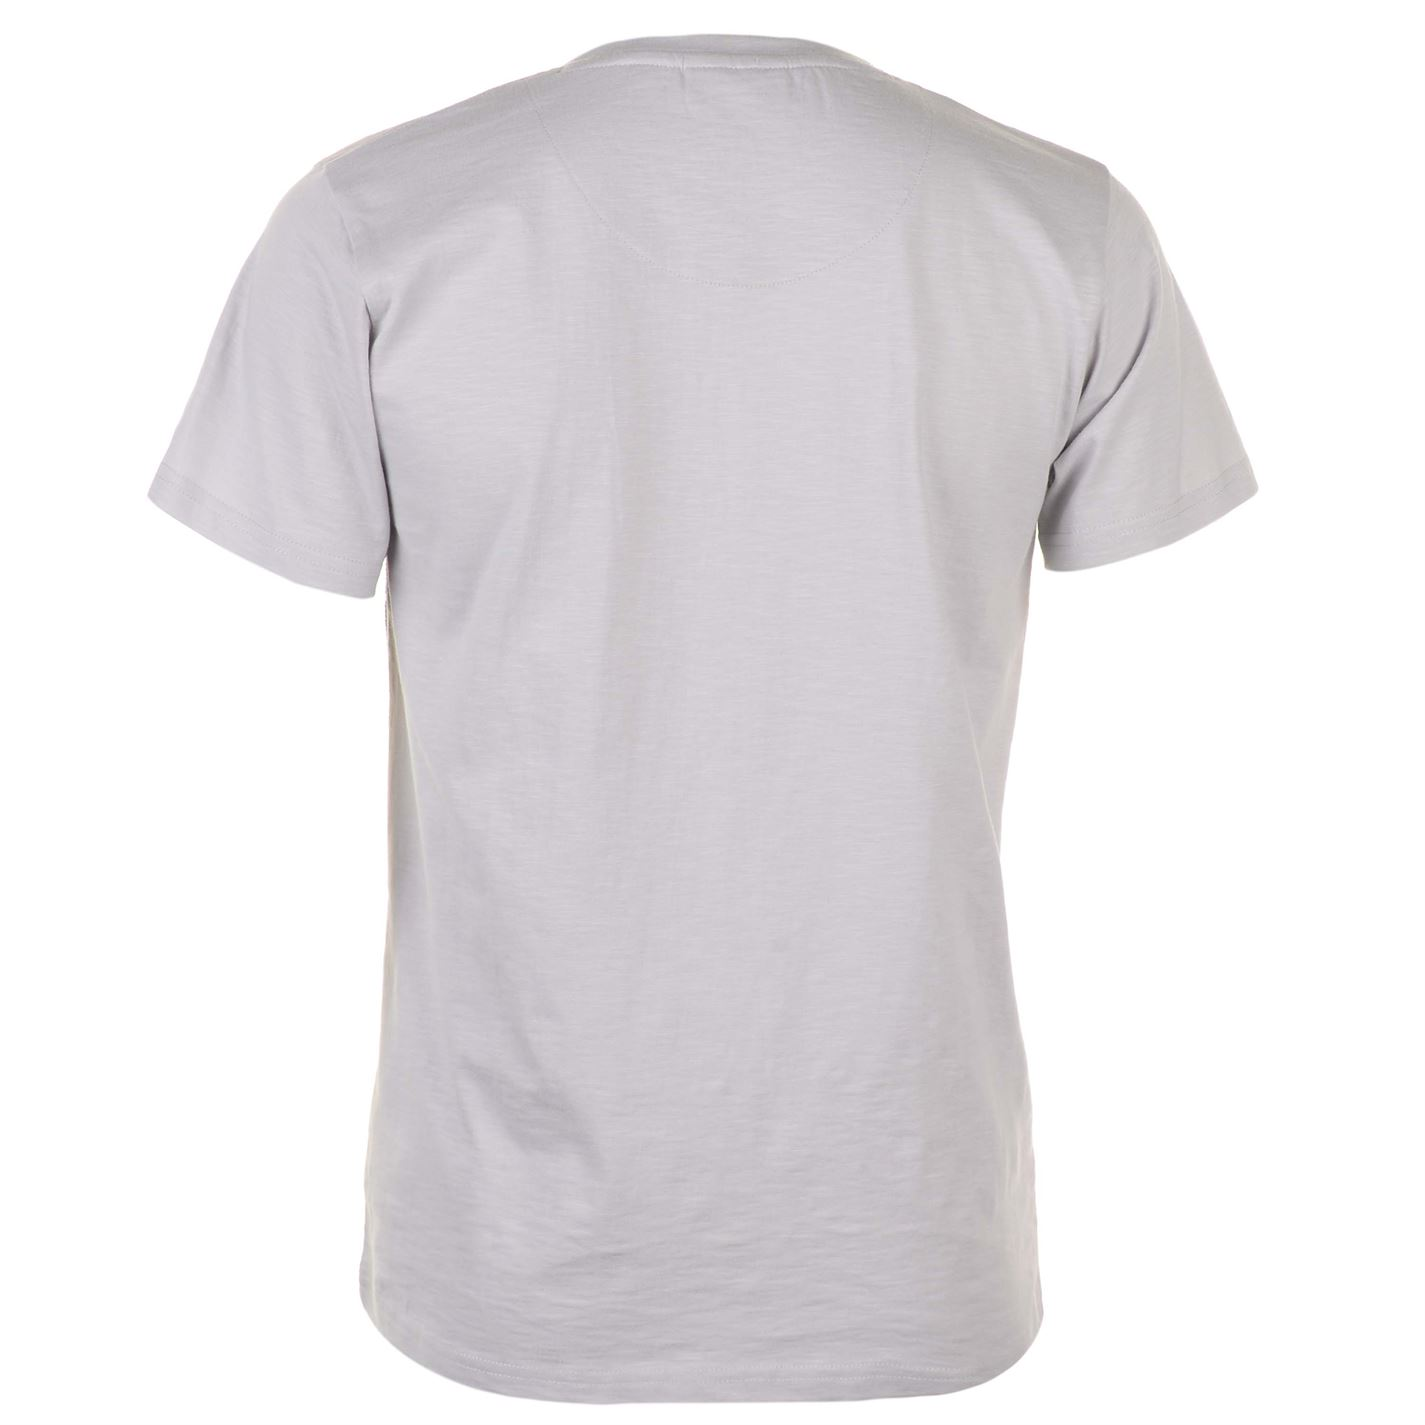 Pierre-Cardin-Mens-Print-Y-Neck-T-Shirt-V-Tee-Top-Short-Sleeve-Cotton thumbnail 9